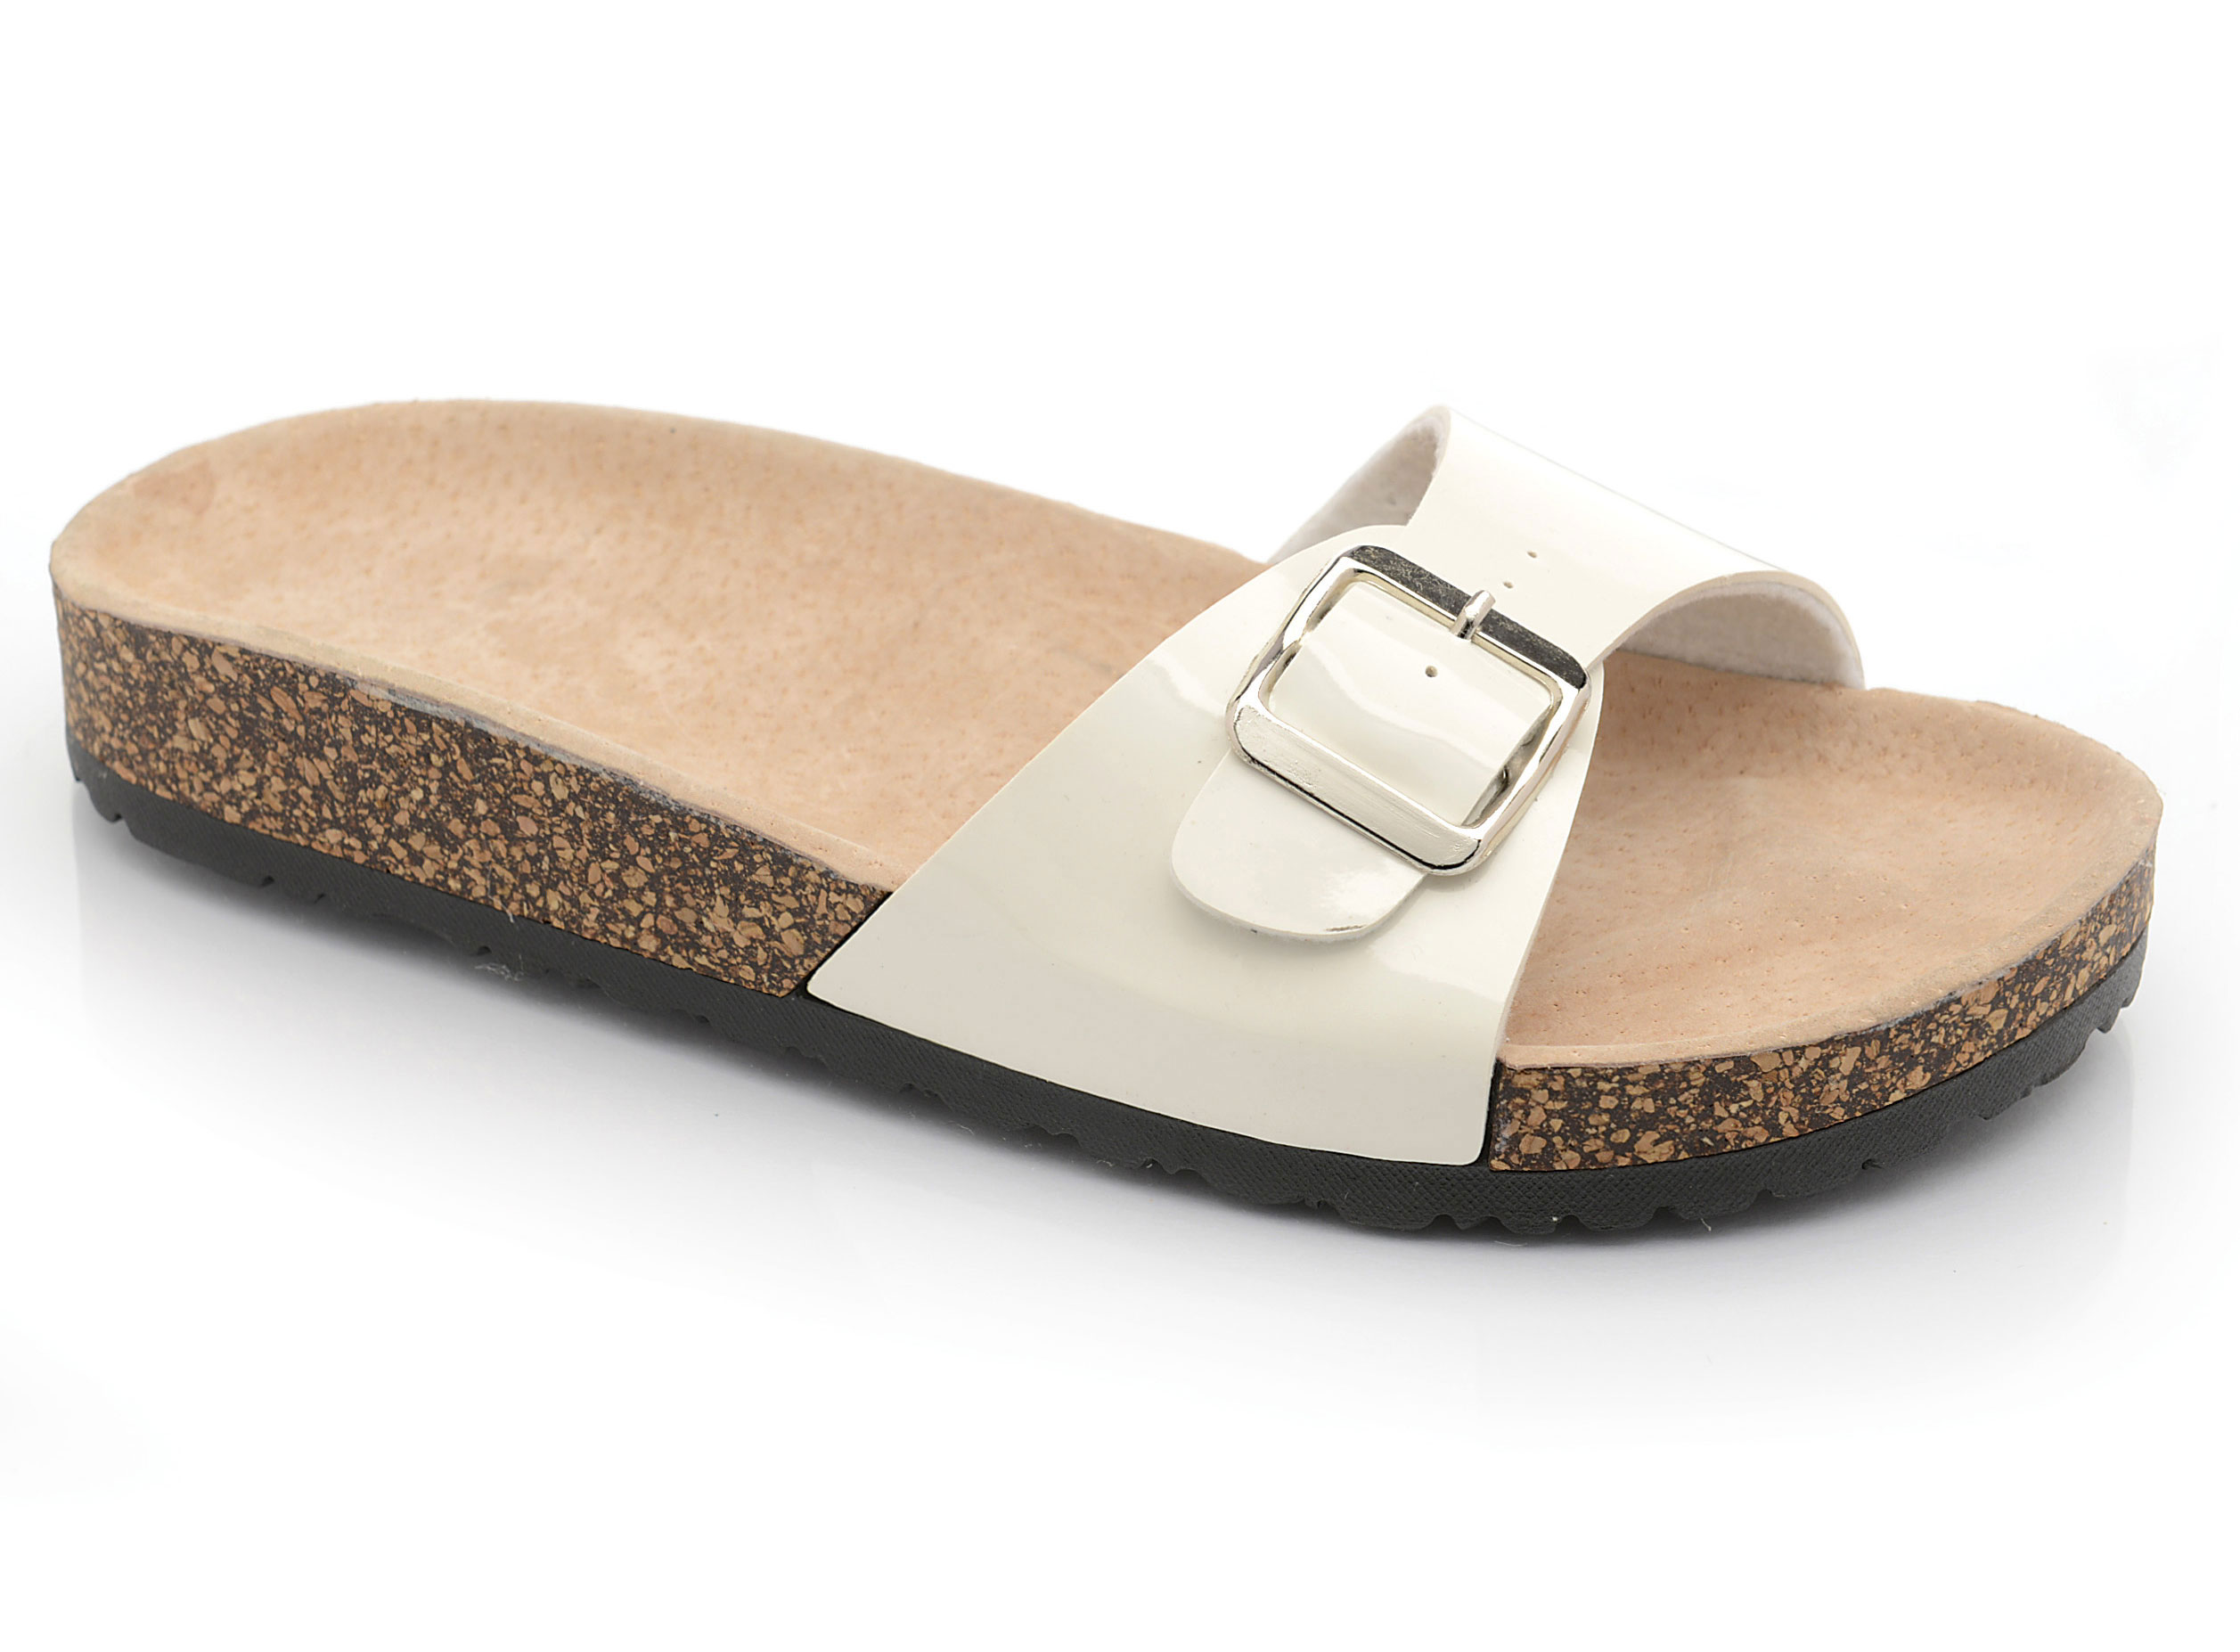 Get free shipping on a number of clogs and mules from the top brands including Steve Madden, BCBGeneration and Birkenstock at tubidyindir.ga Shoes; Slides & Mules; Slides & Mules. Page Filters Departments. Boots () Flats () Heels & Pumps () Sandals () Aetrex® Women's Lynco Shimmer Clog. Aetrex® Women's Lynco Shimmer Clog Pricing.